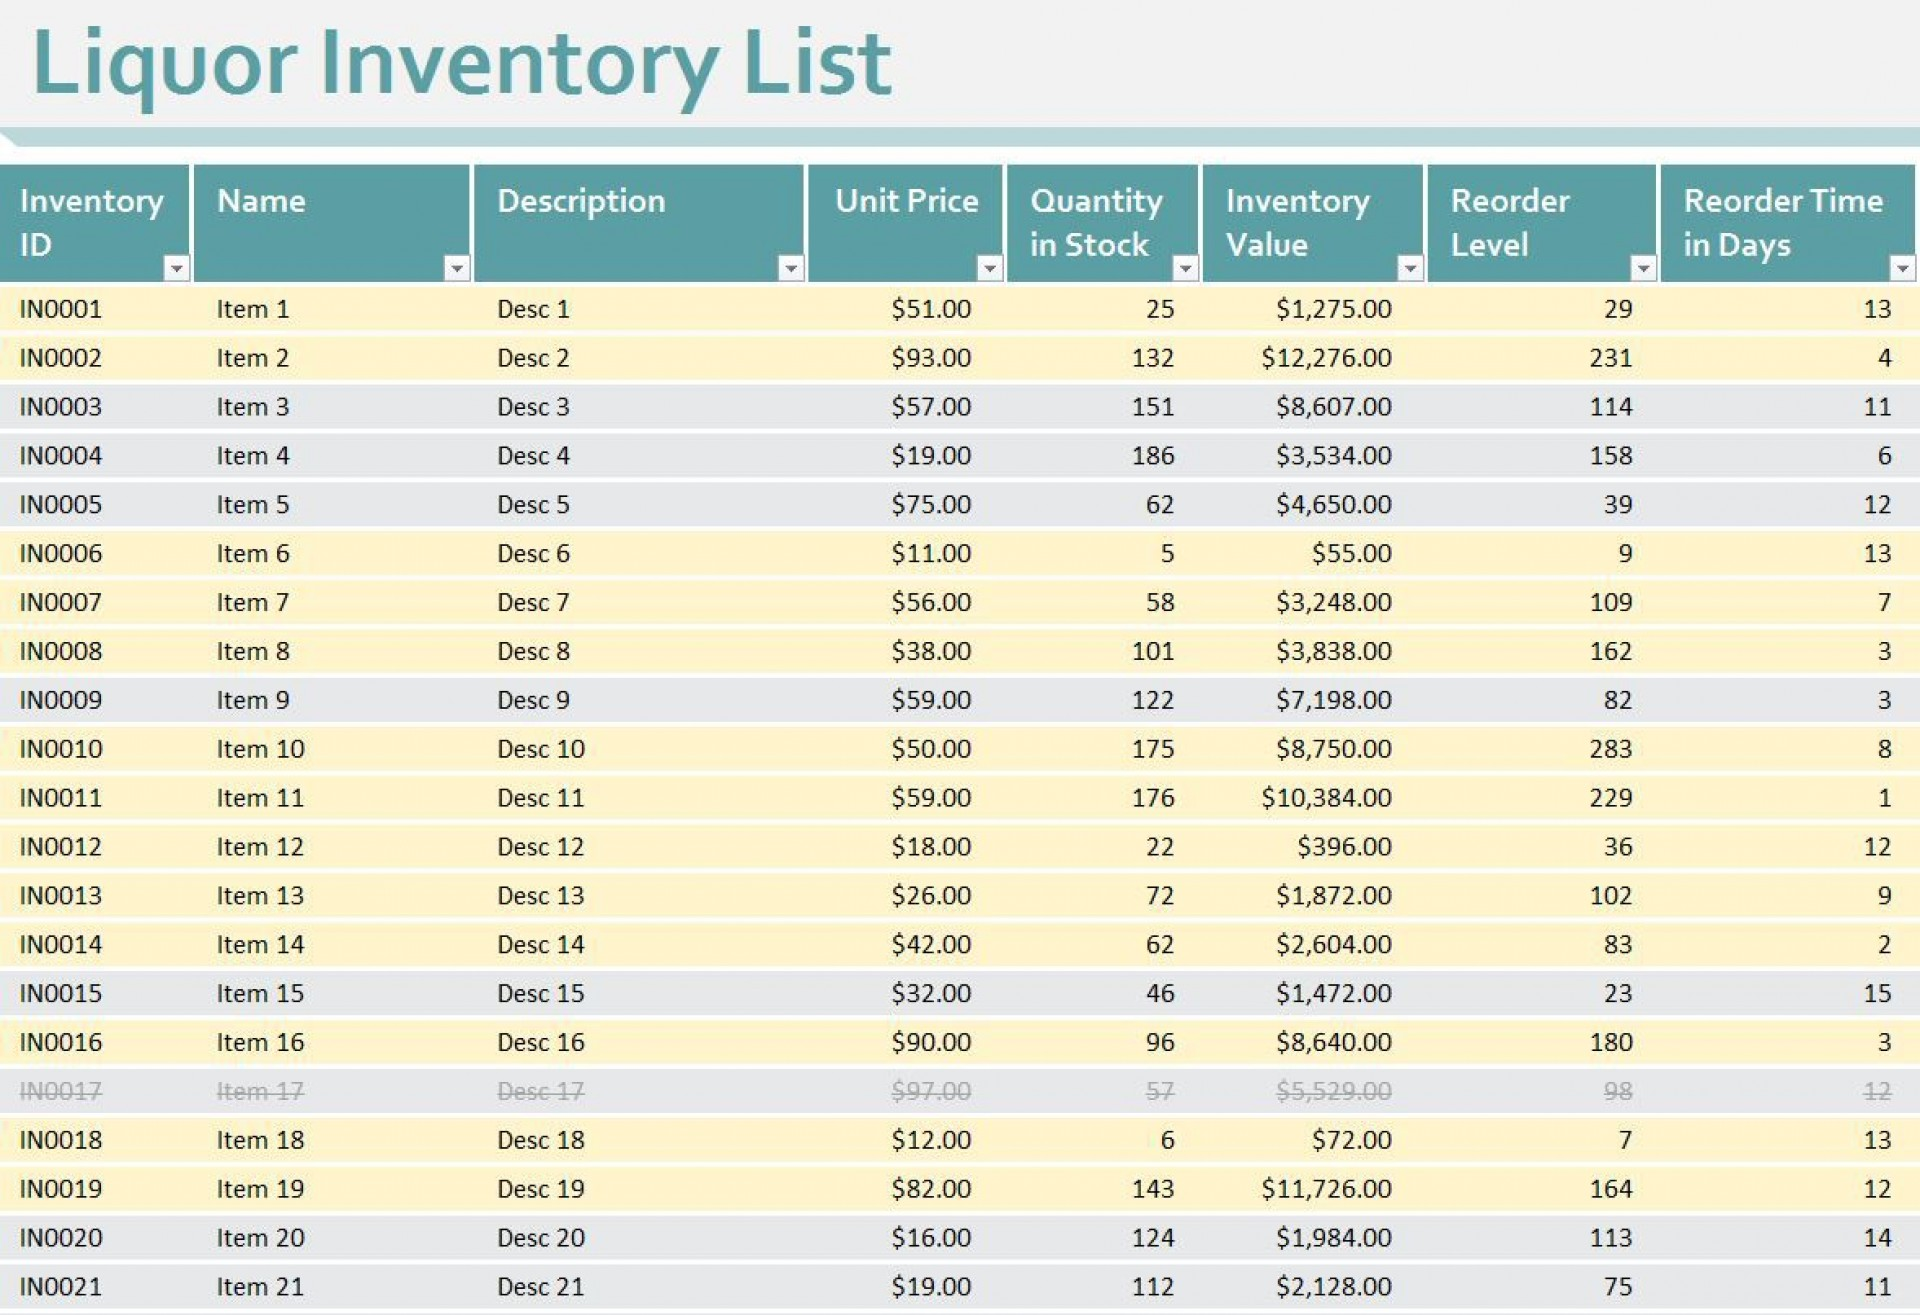 008 Unforgettable Free Liquor Inventory Spreadsheet Template Excel Image 1920